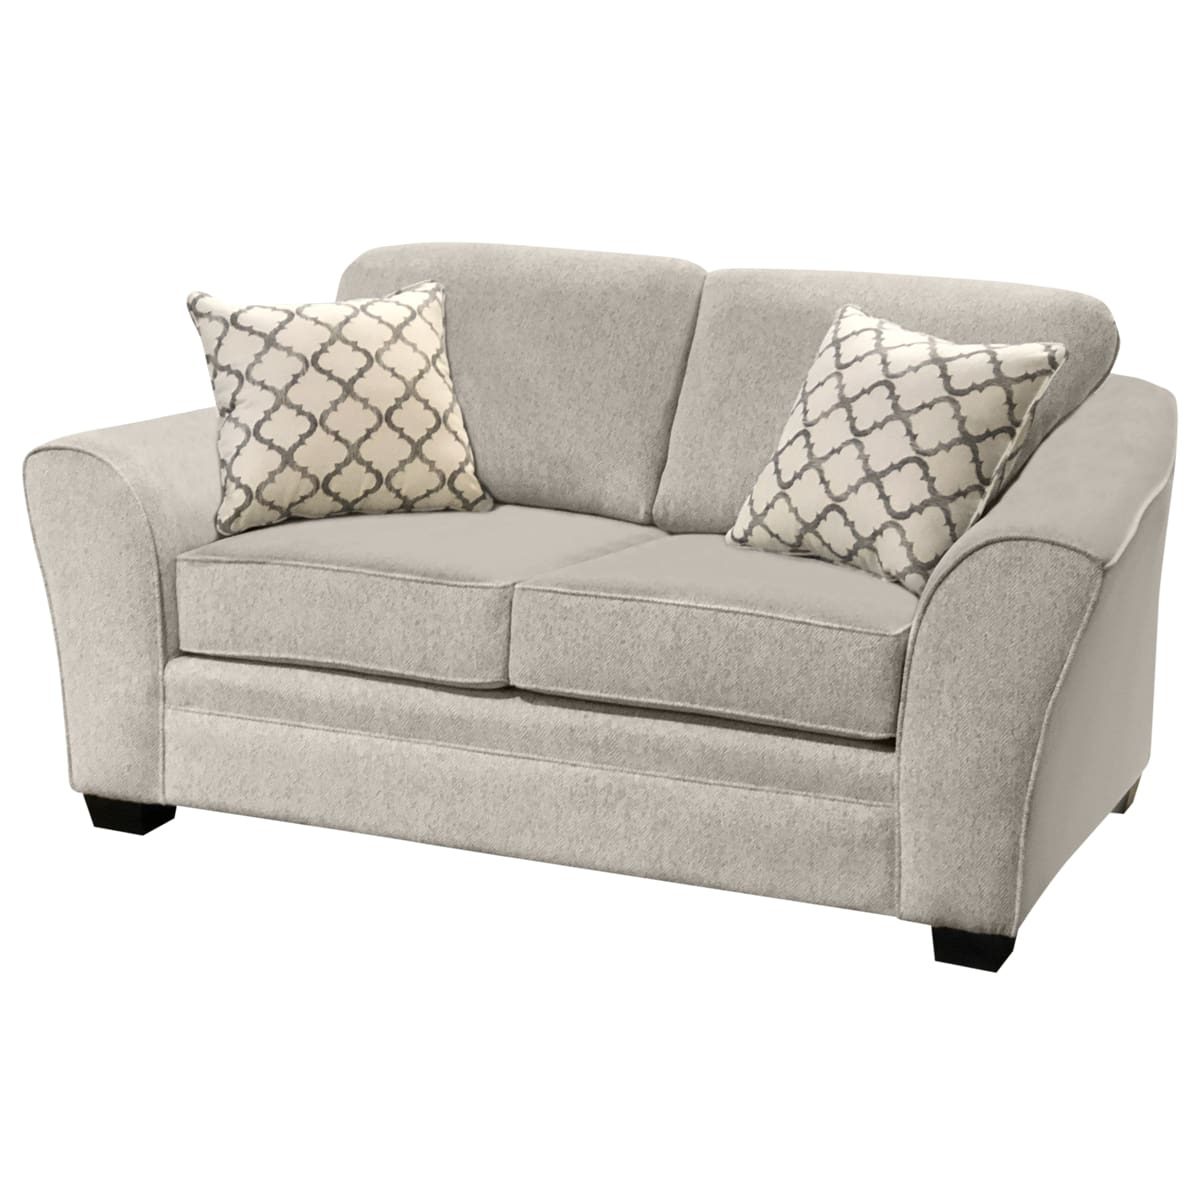 Tyson Loveseat - Loveseat